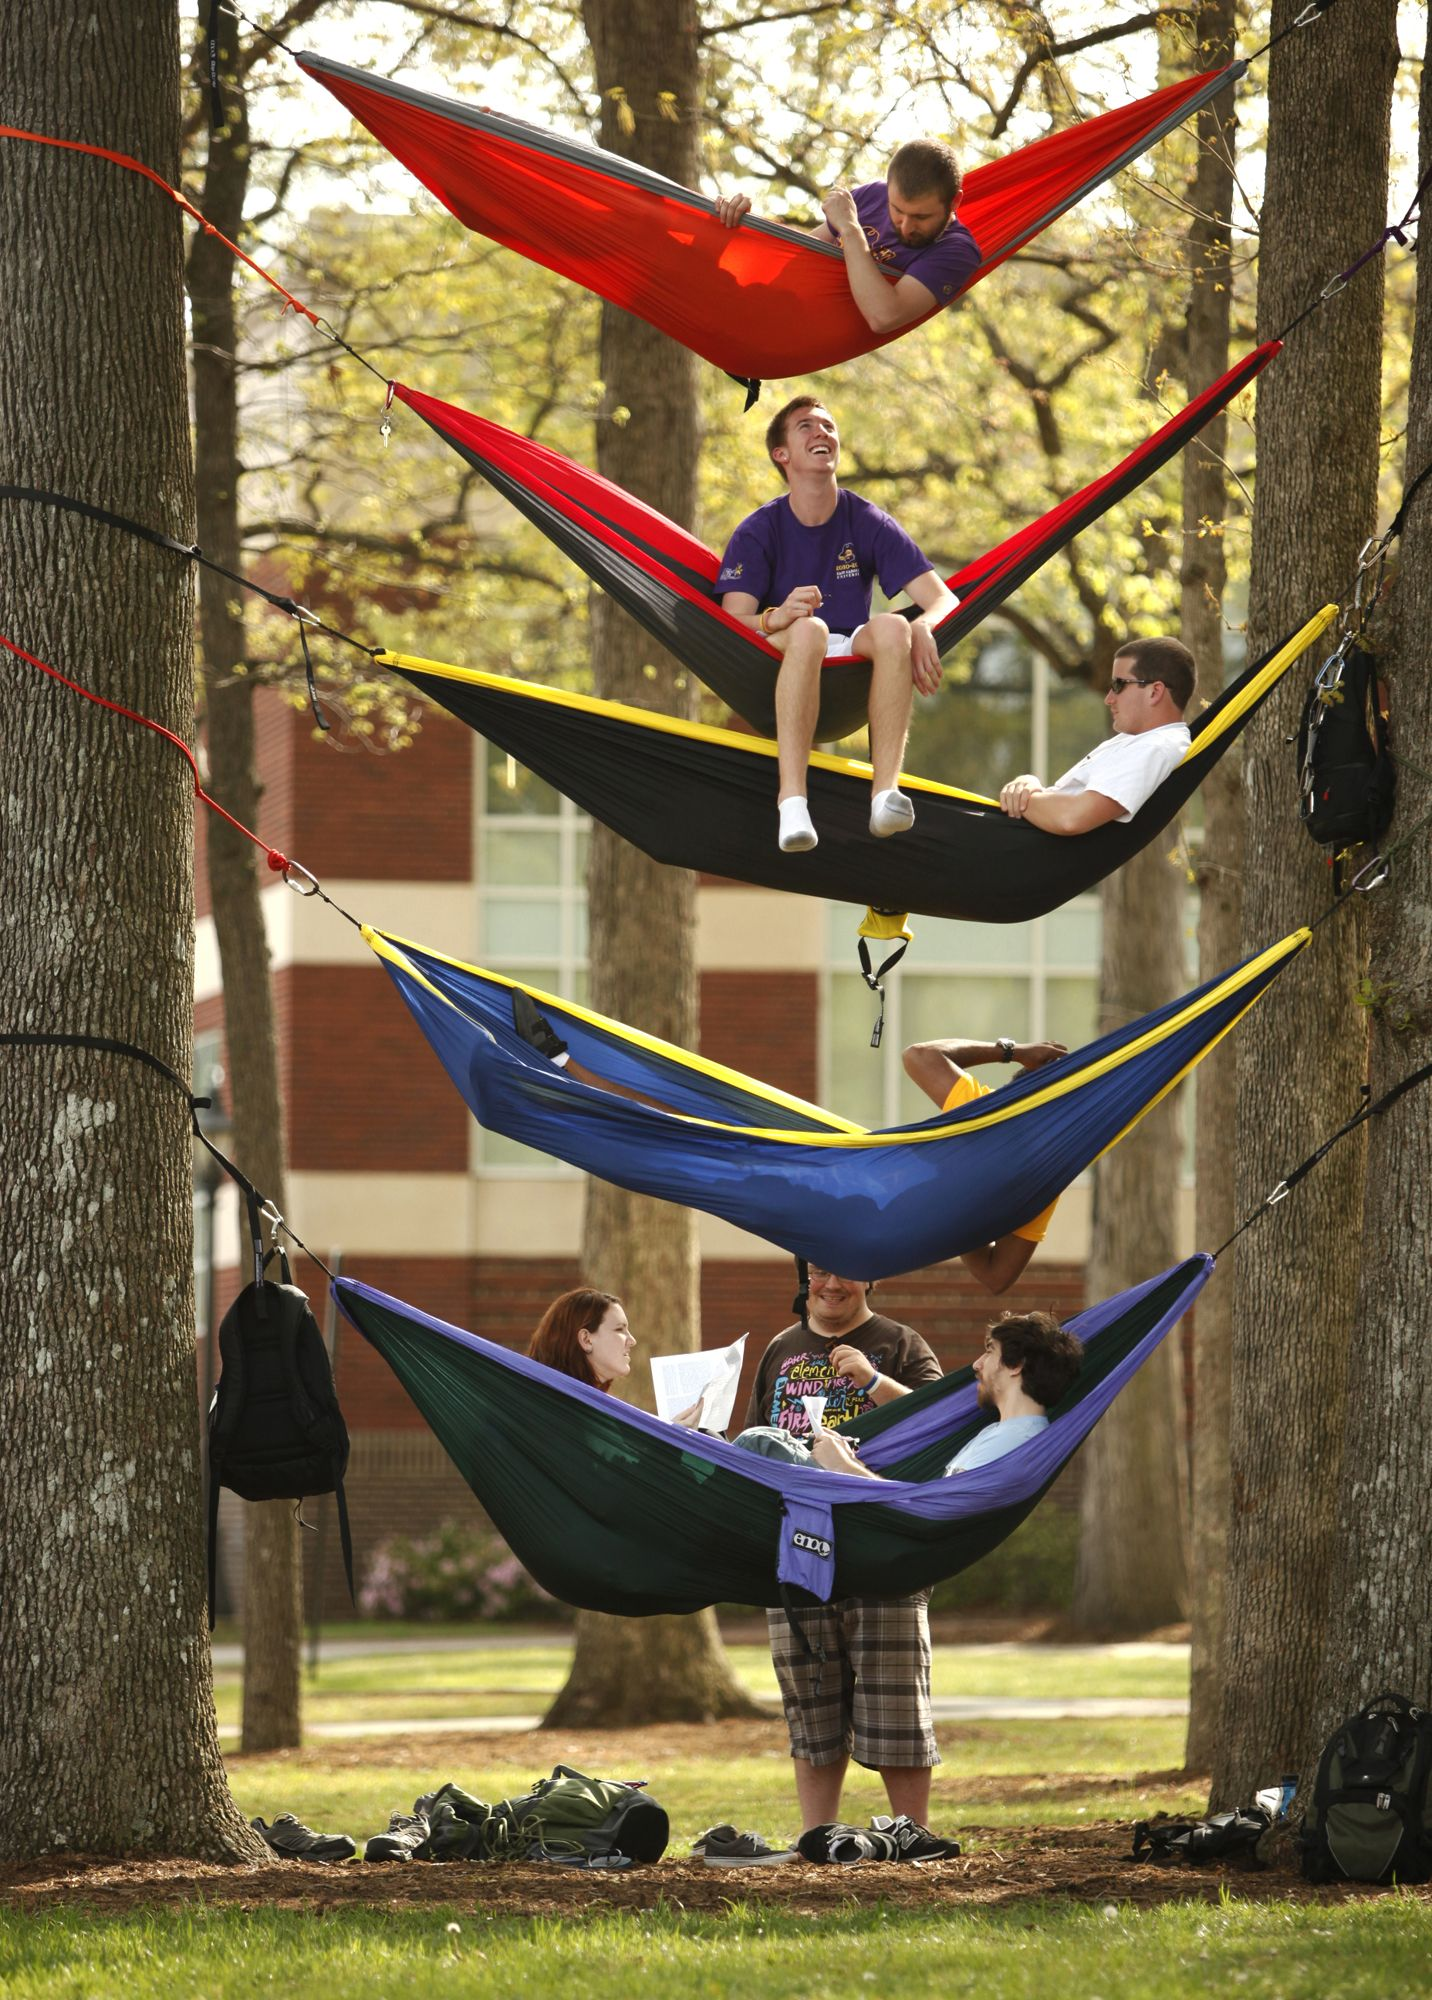 east carolina university students hung their hammocks between trees to enjoy the warm spring weather and because it was a   relaxing alternative to studying     east carolina university students  from top to bottom  matthew      rh   pinterest